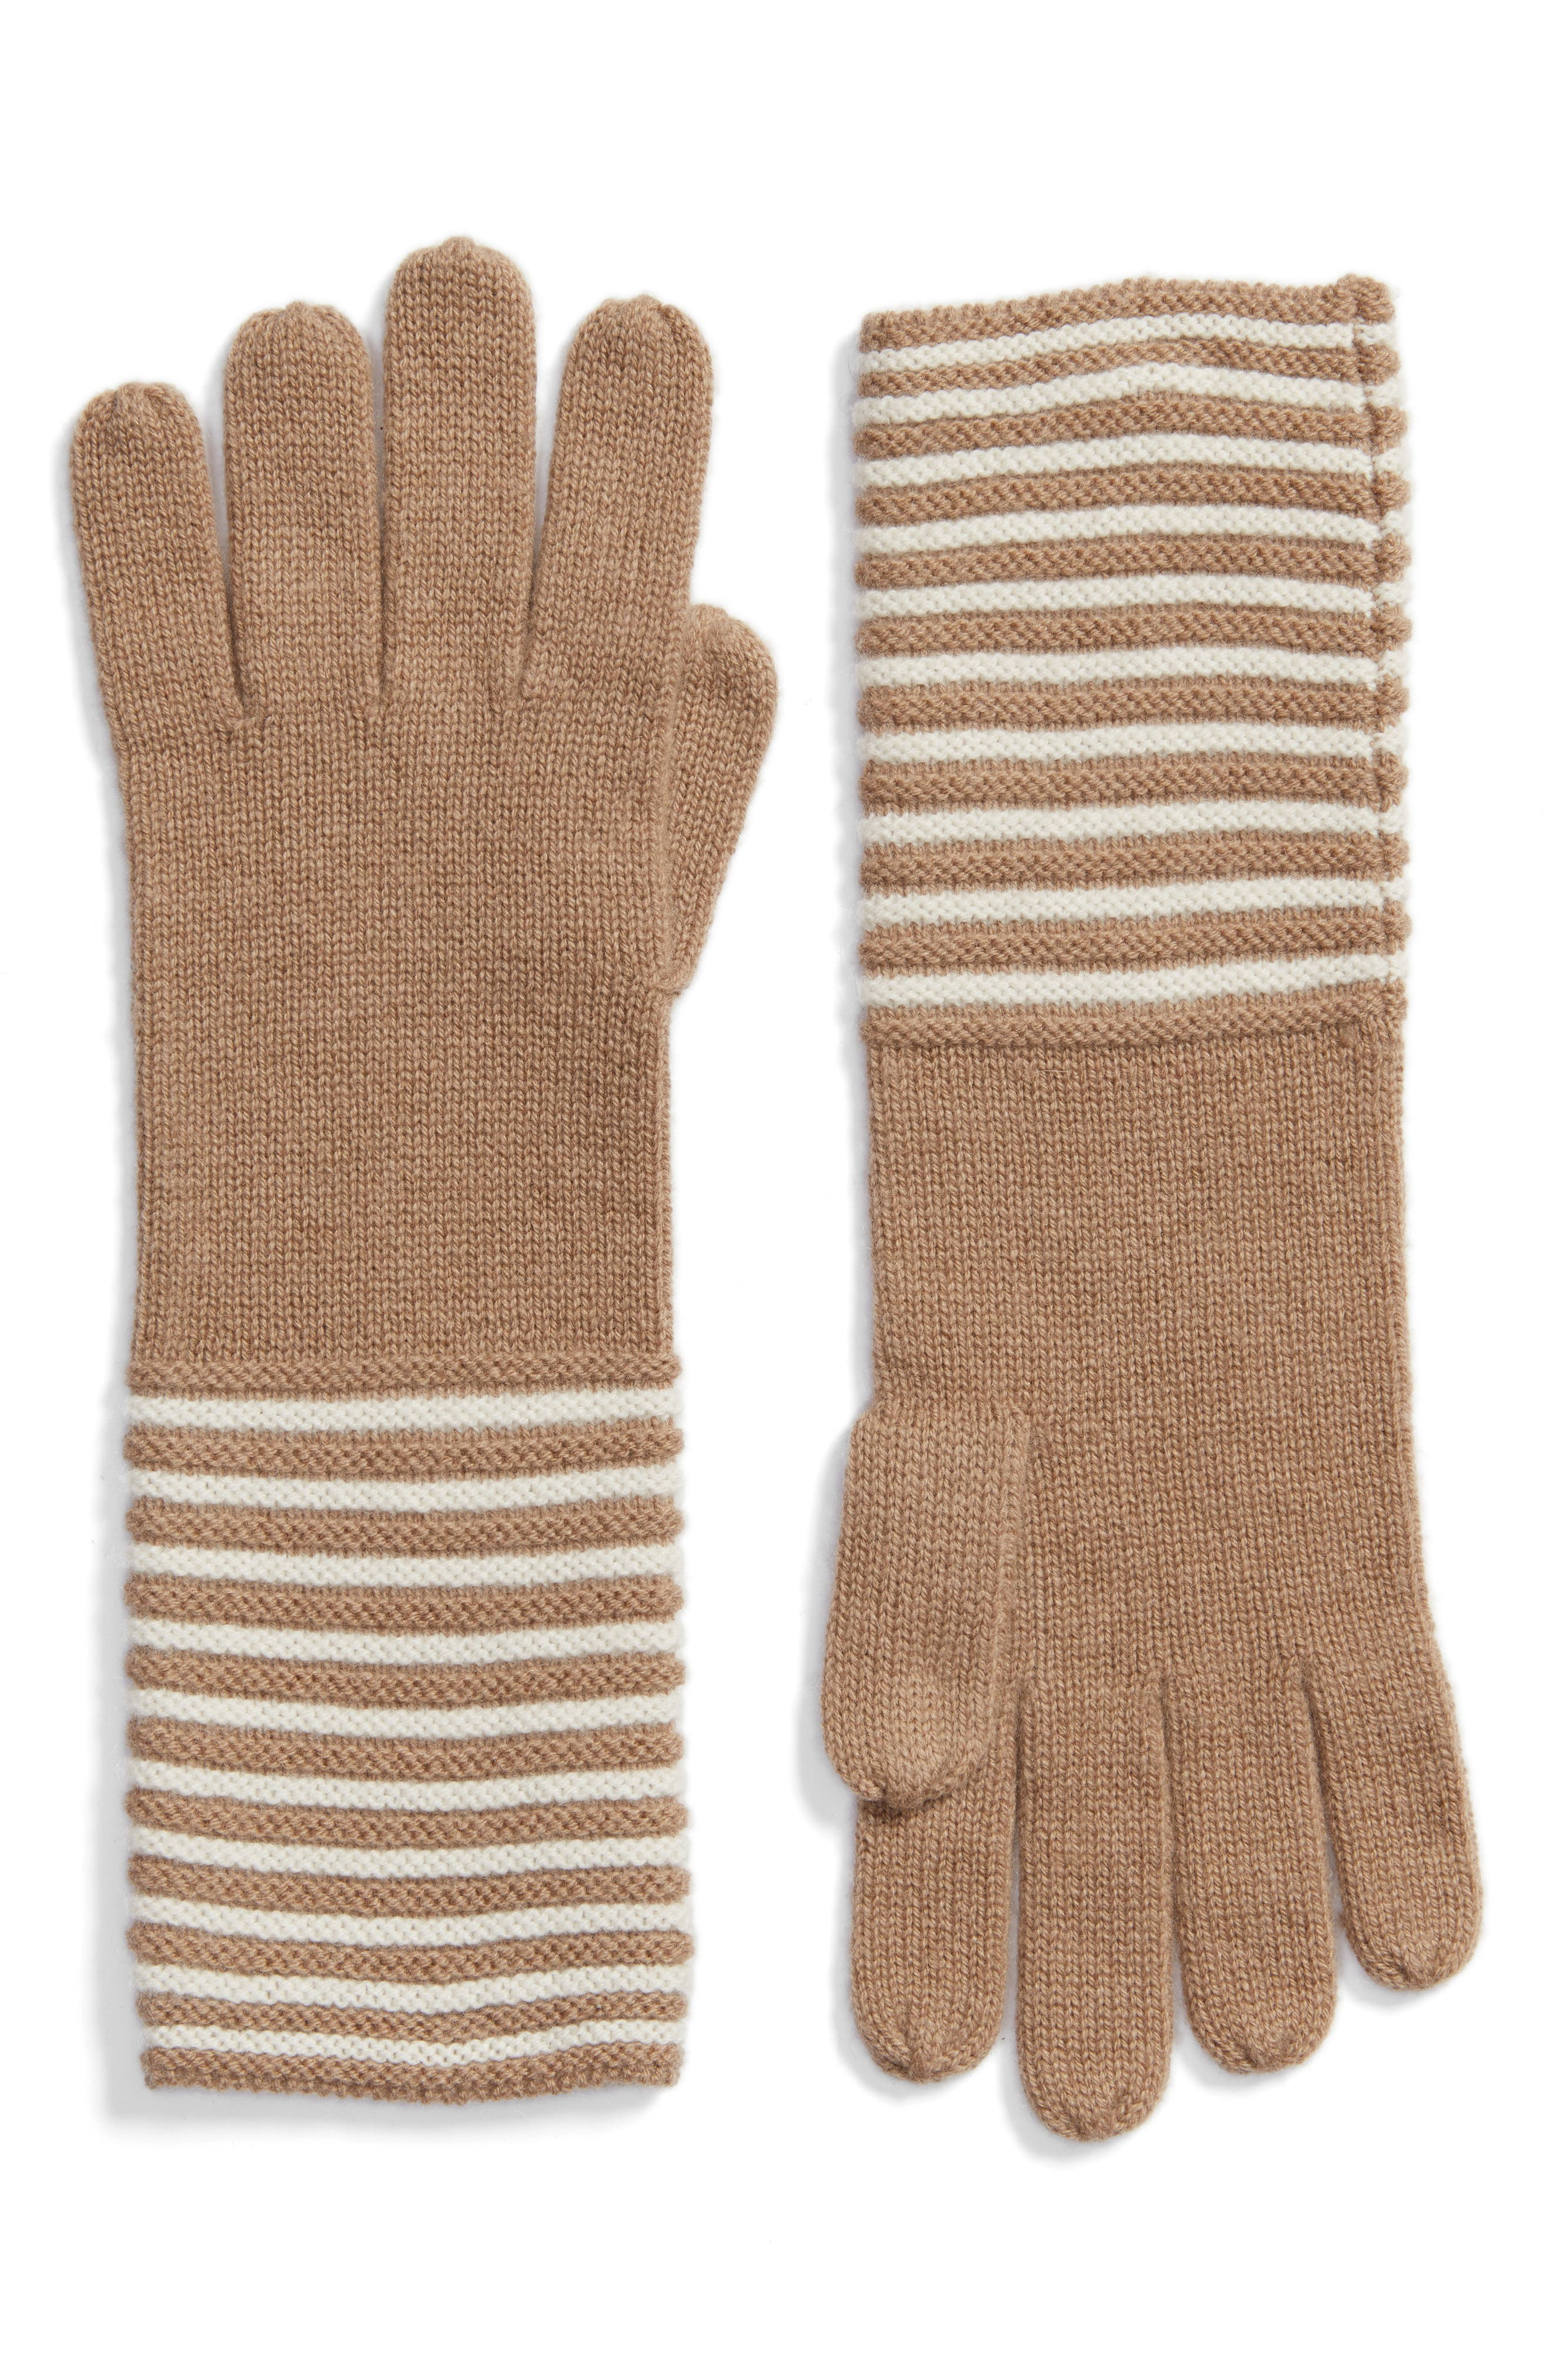 Double Links Wool & Cashmere Gloves,                             Main thumbnail 1, color,                             Dark Camel/ Cream